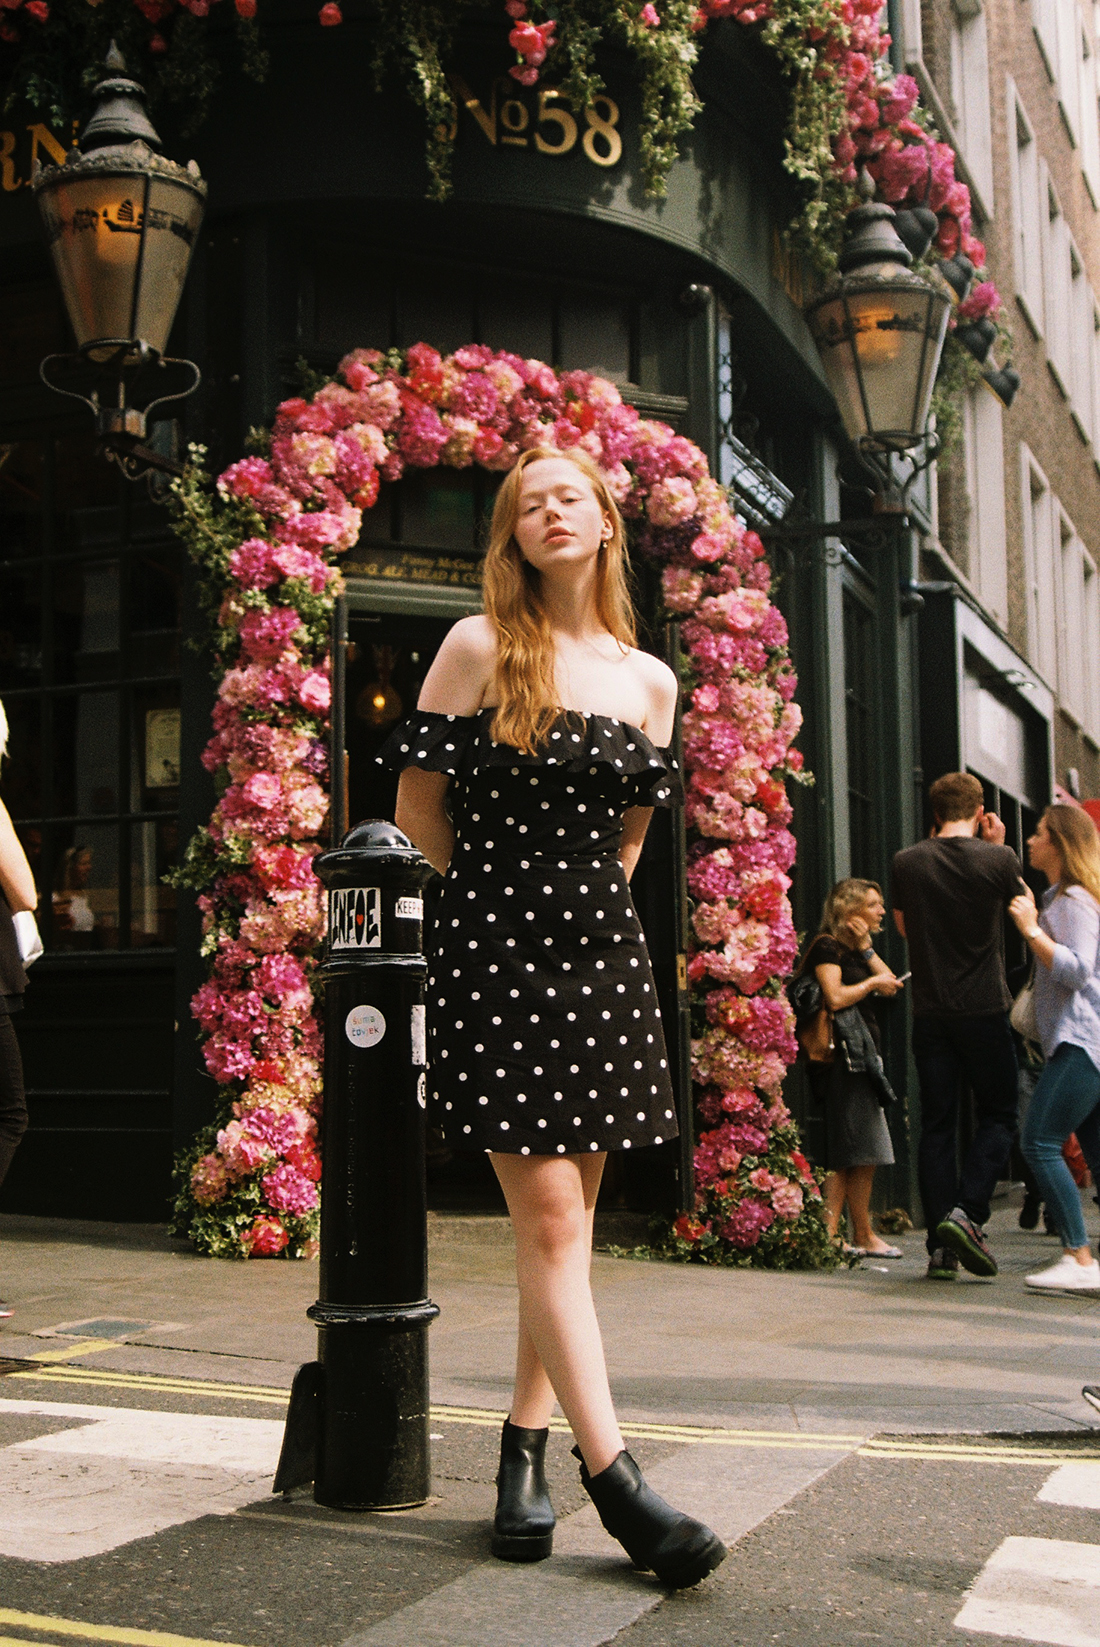 blogger photoshoot on 35mm film by London photographer Ailera Stone